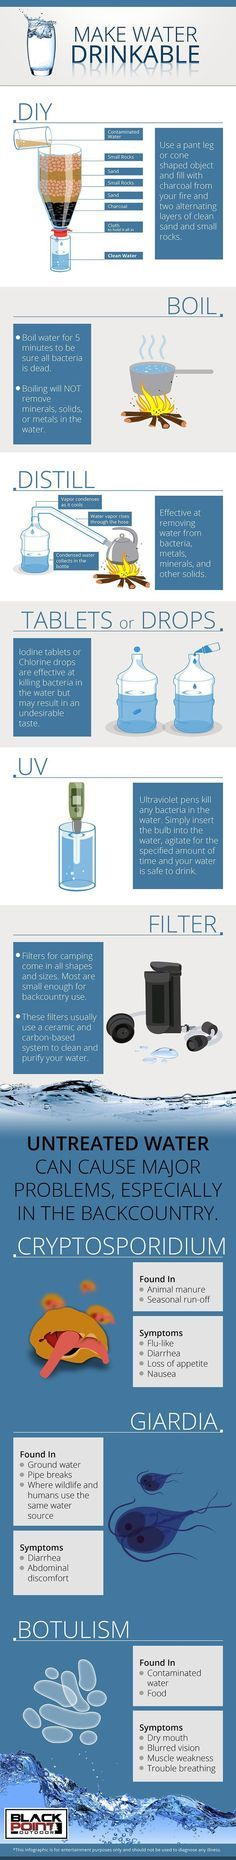 Make Water Drinkable | Why and How to Purify Water | Survival Skills, Tips And Tricks by Survival Life at http://survivallife.com/2016/01/19/make-water-drinkable/